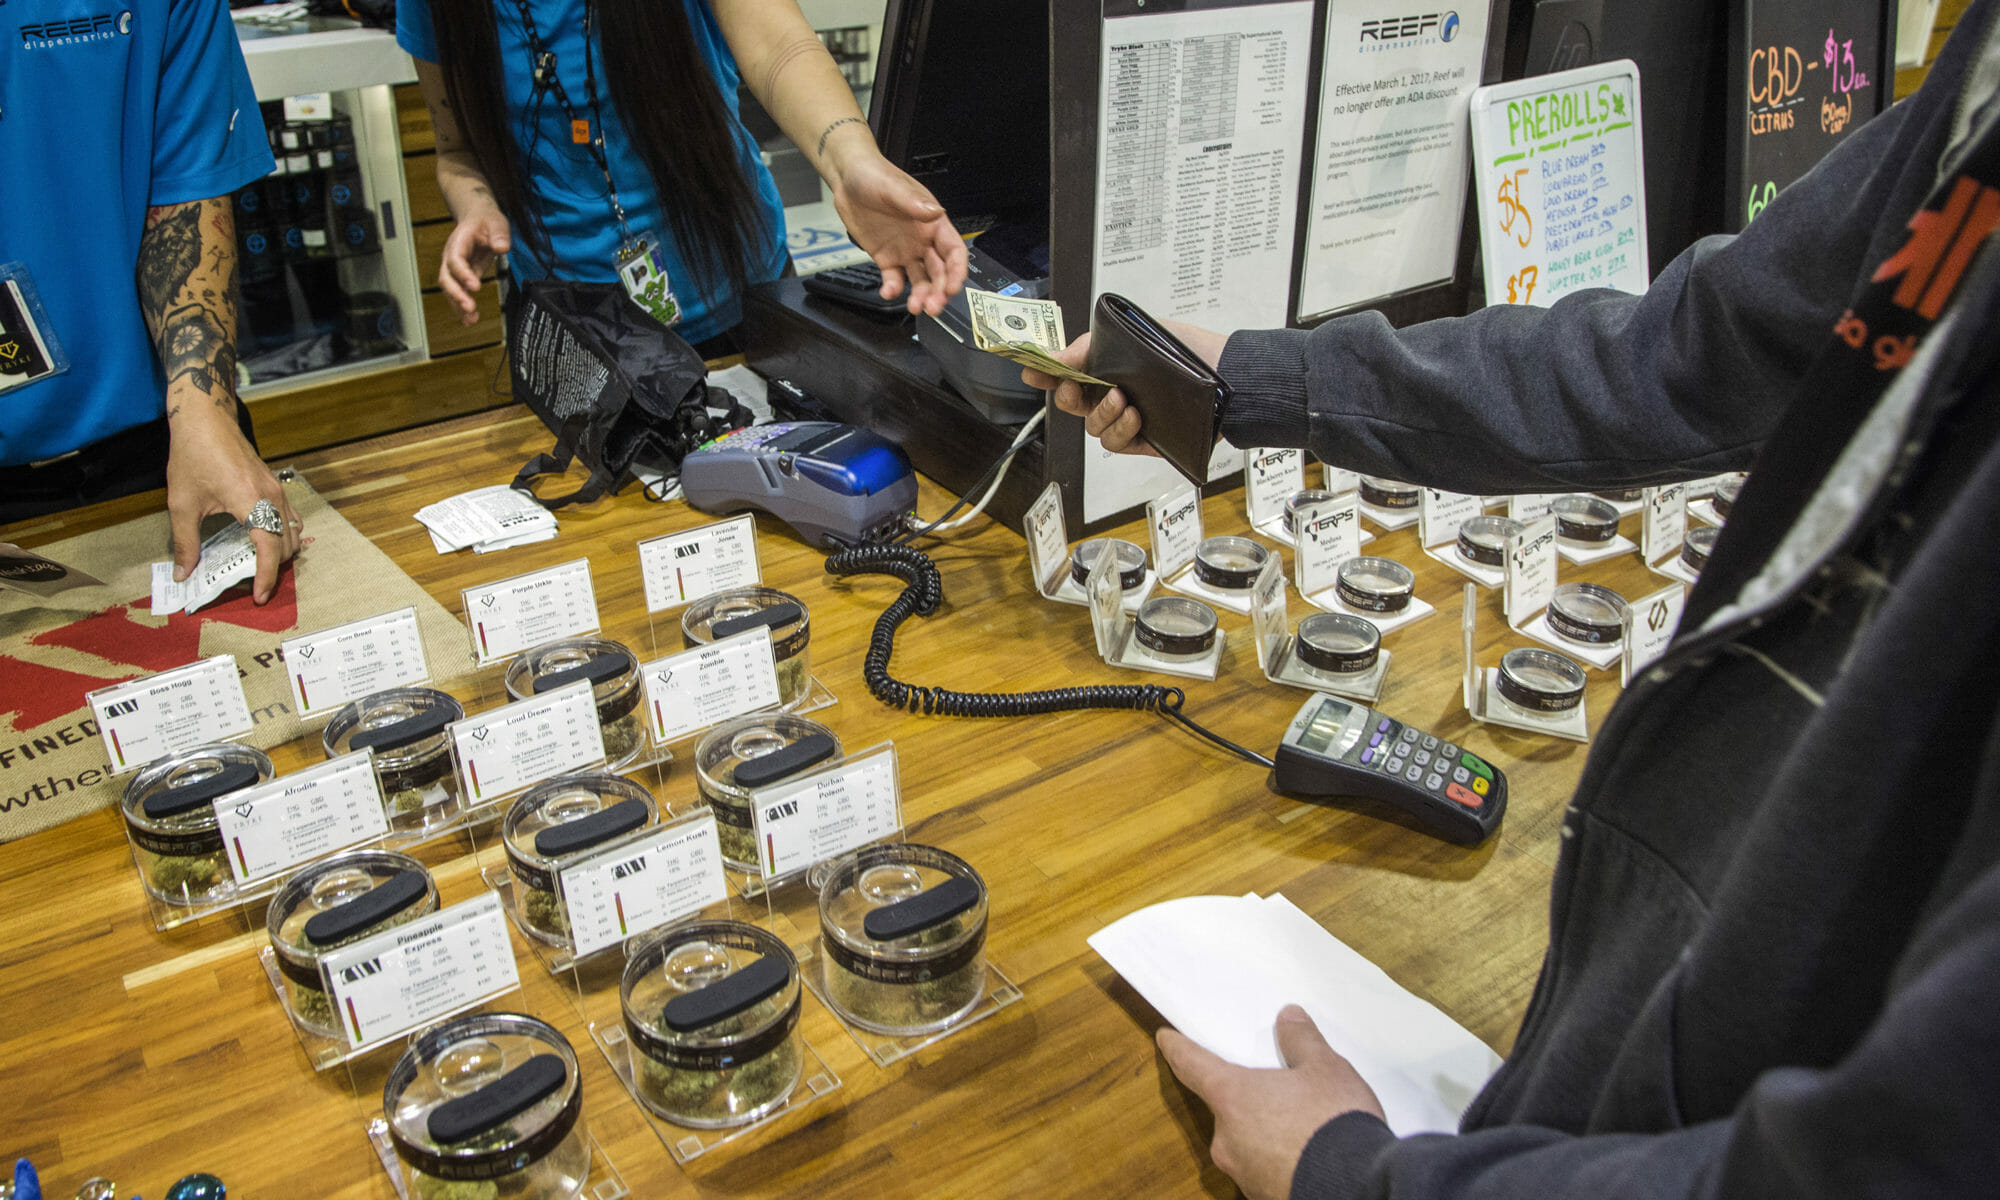 11 marijuana businesses sue, arguing state 'arbitrarily' issued dispensary licenses, lack of transparency could be hiding corruption